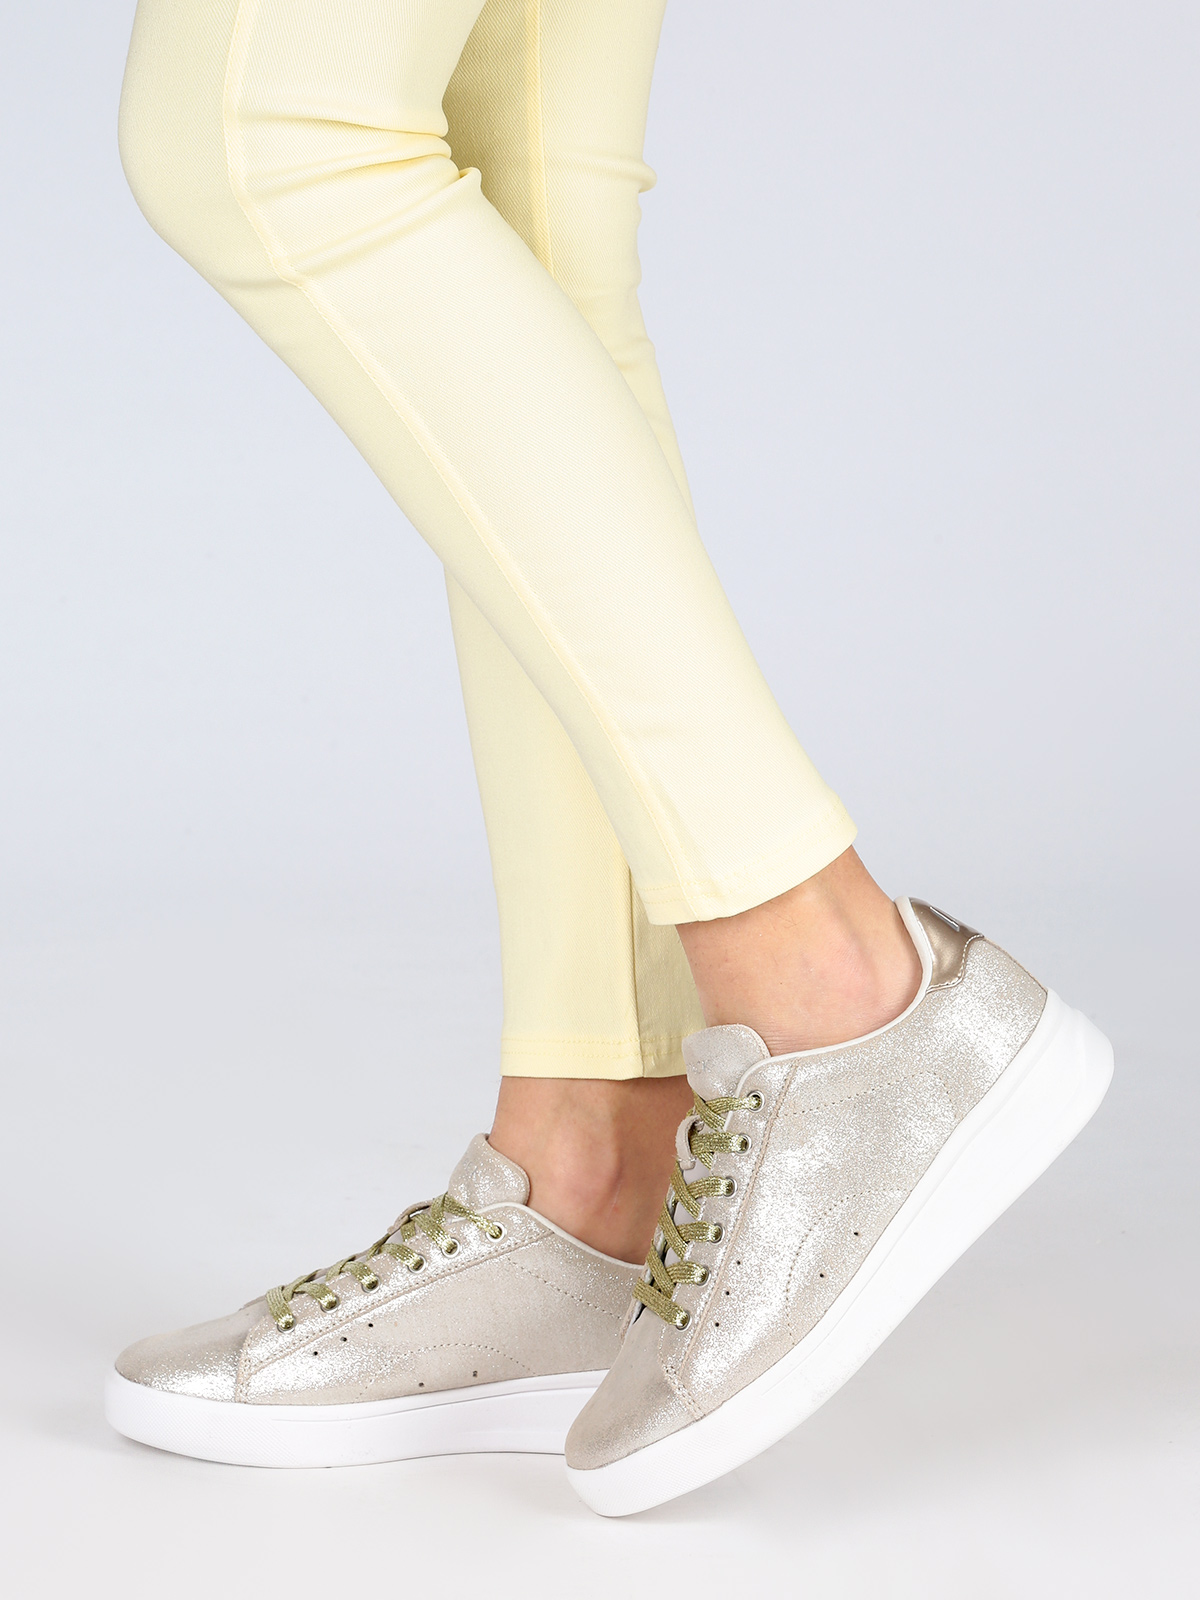 Leather Sneakers Flat